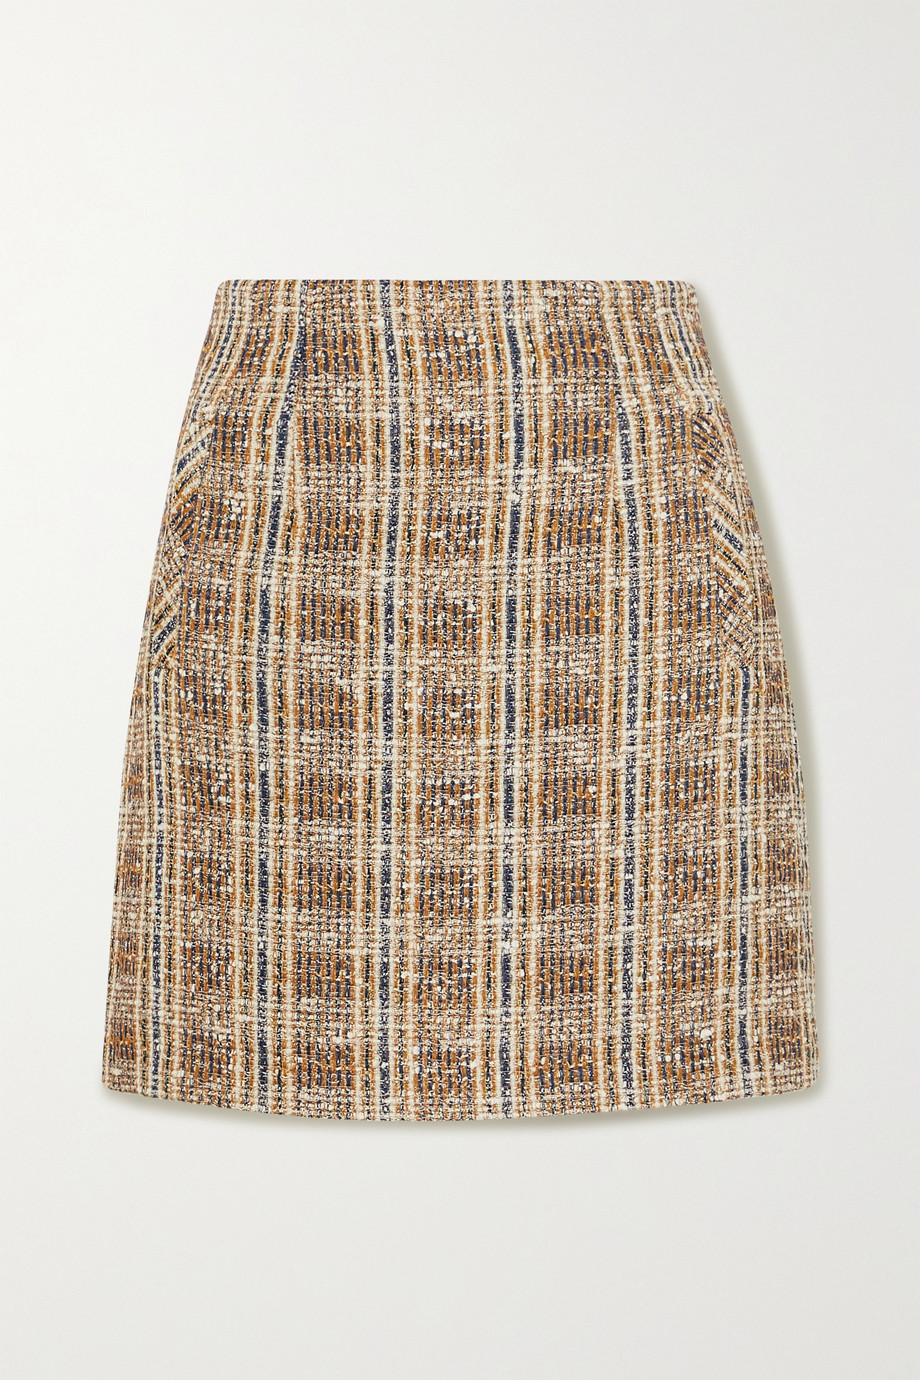 Veronica Beard Roman checked tweed mini skirt